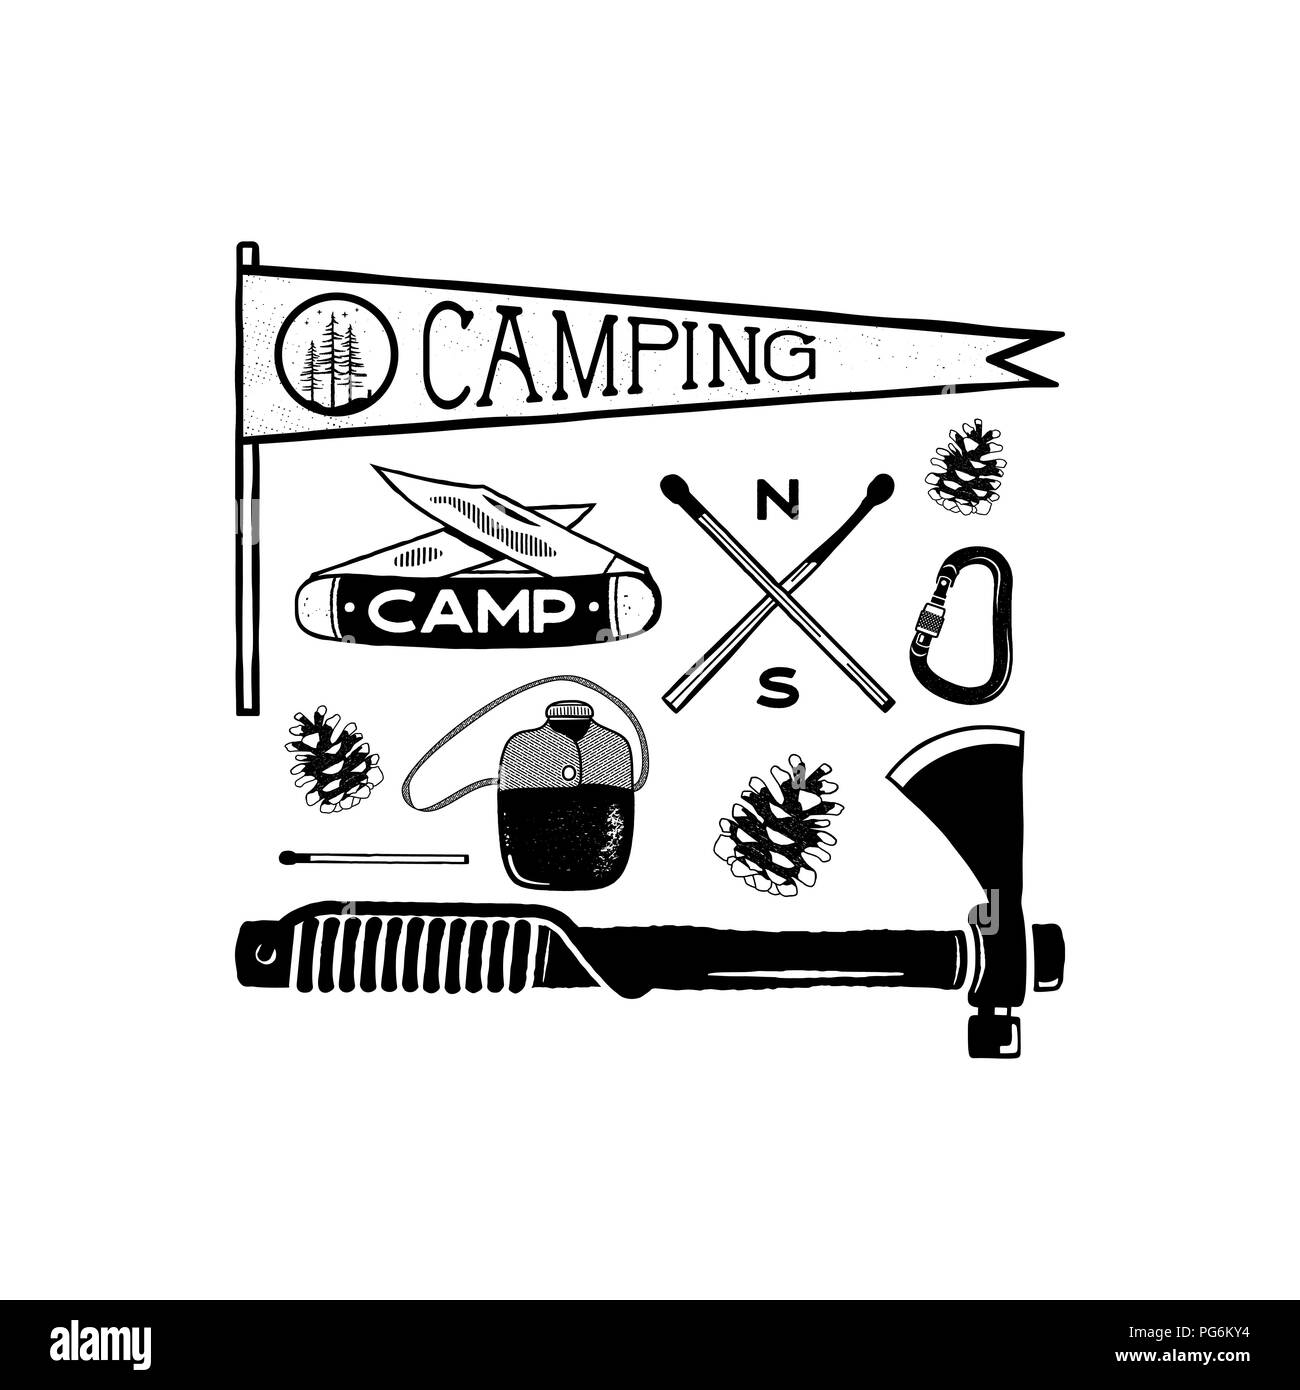 Vintage hand drawn camping adventure shapes. Hiking symbols - pennant, knife, matches, axe and others. Retro monochrome design. Can be used for t shirts, prints. Stock vector isolated on white - Stock Vector